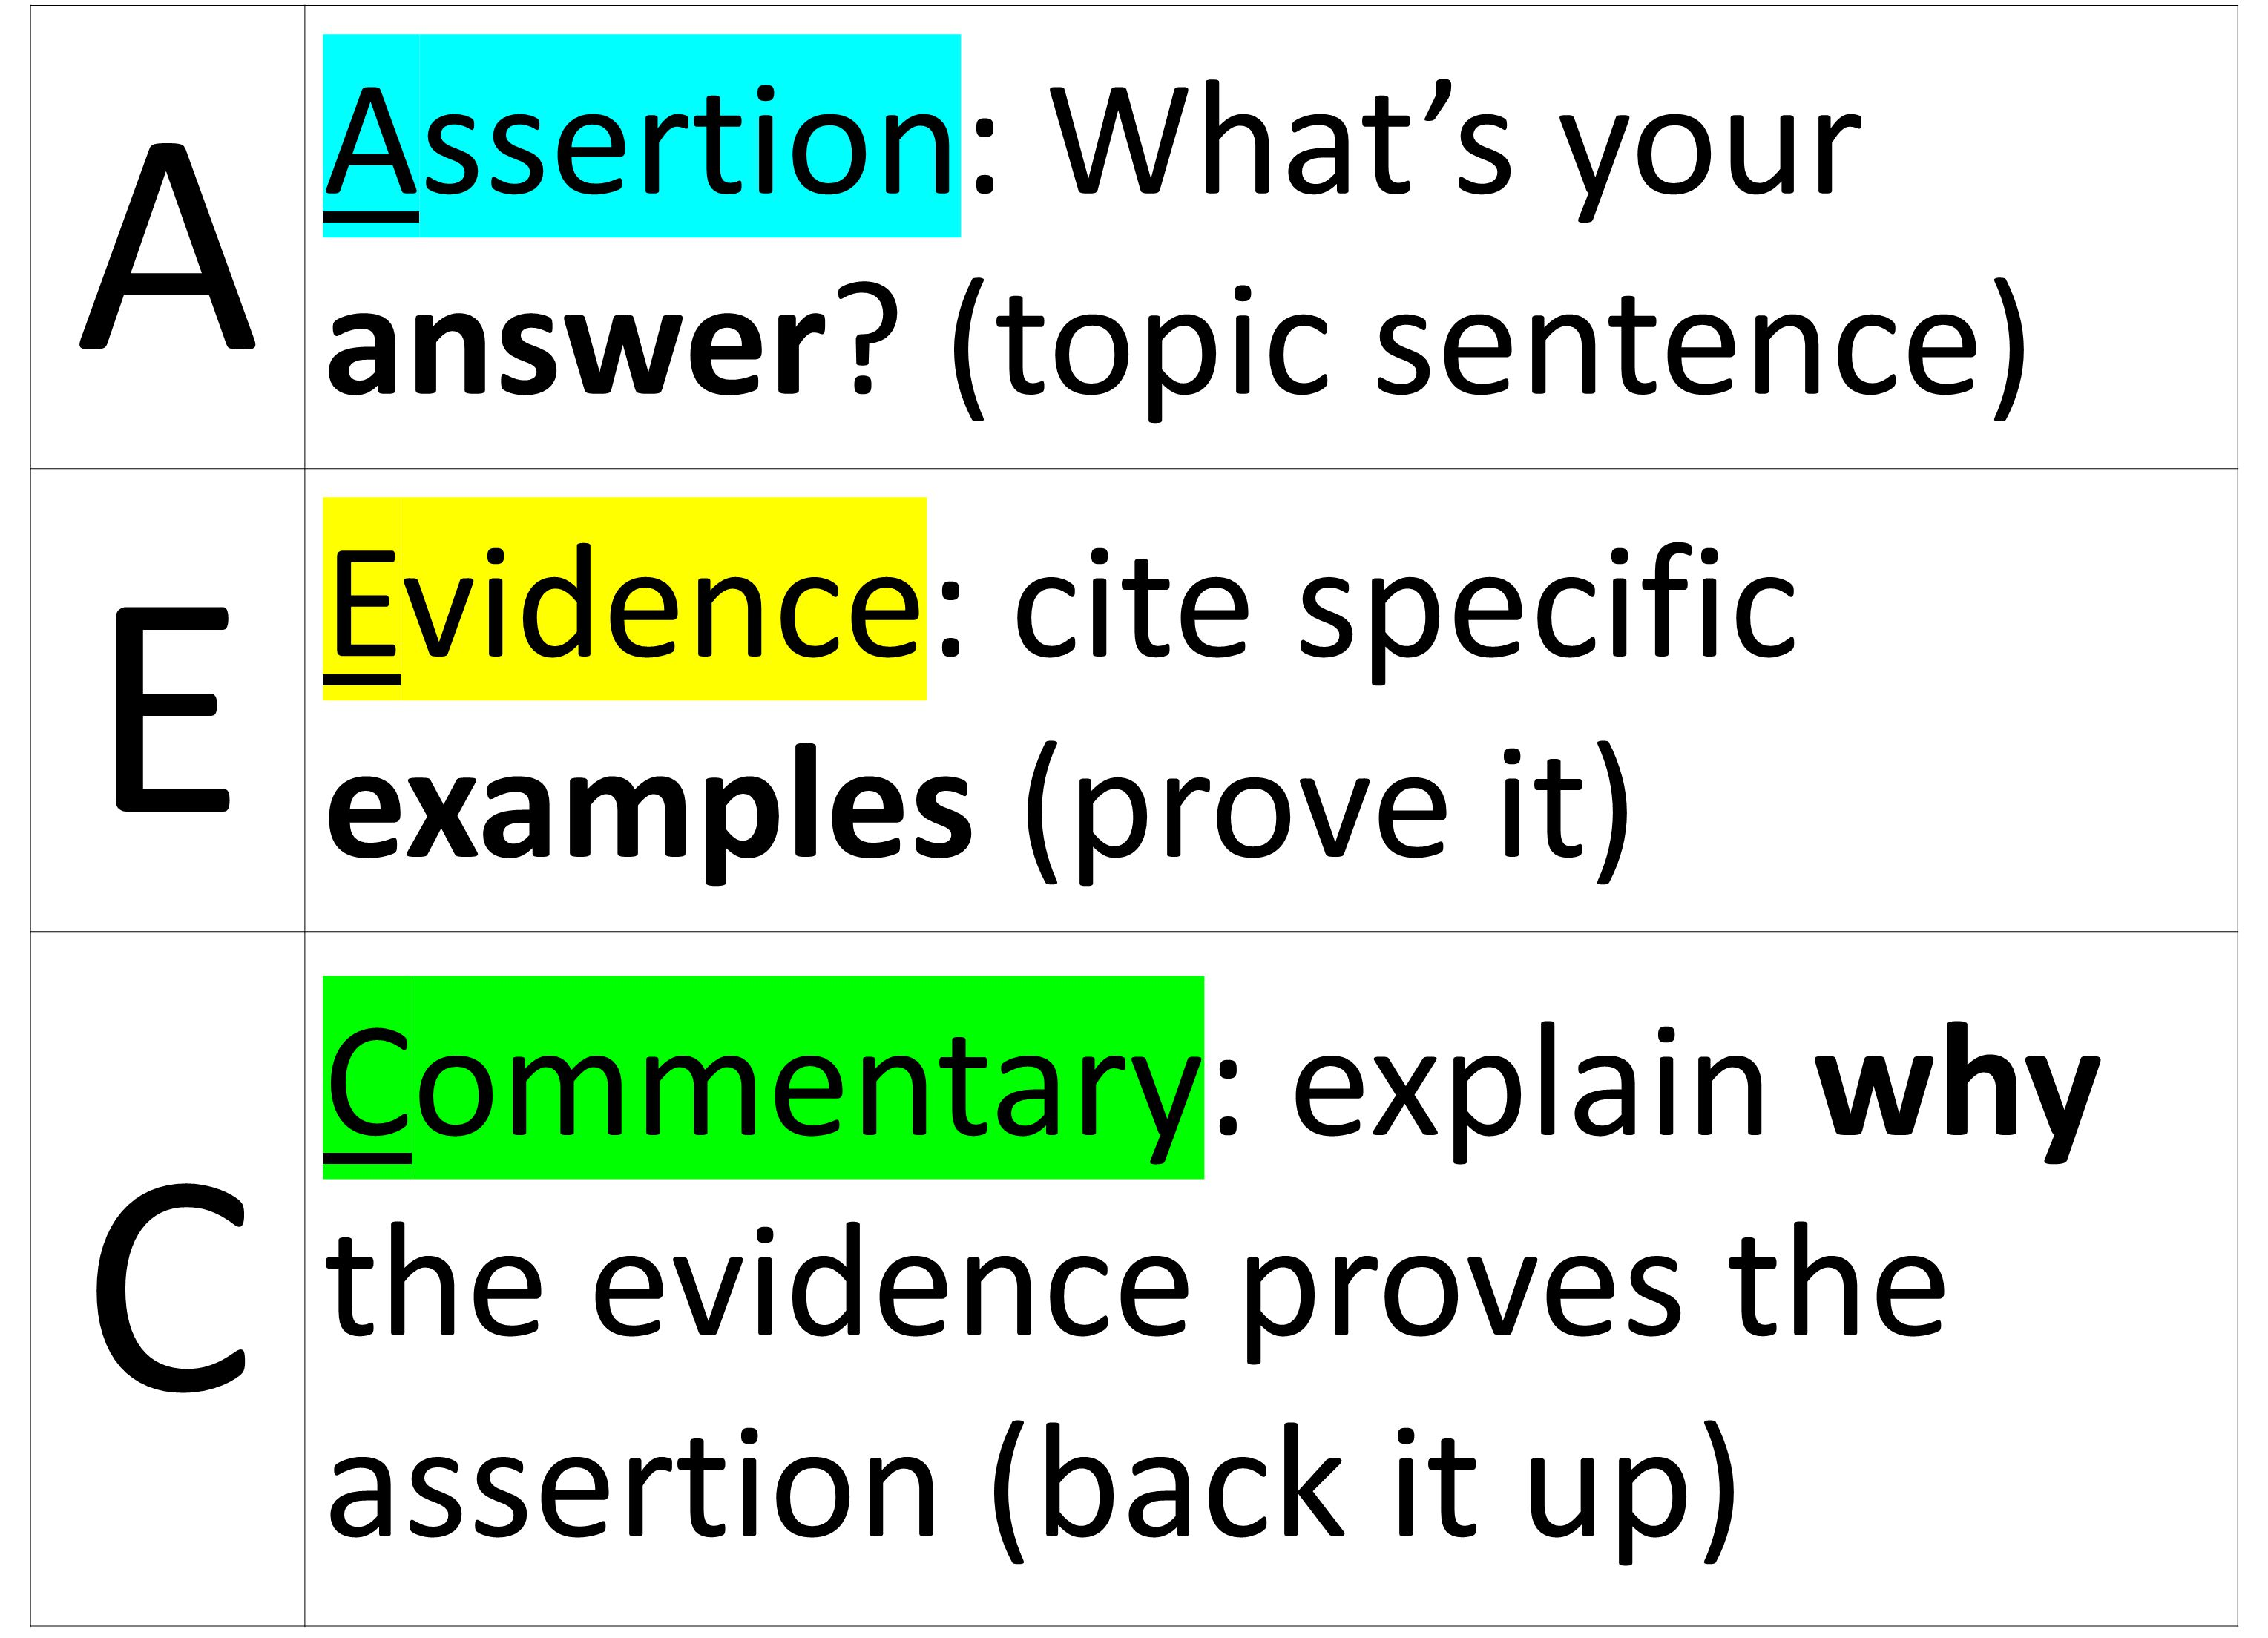 A E C Assertion: What's your answer (topic sentence)